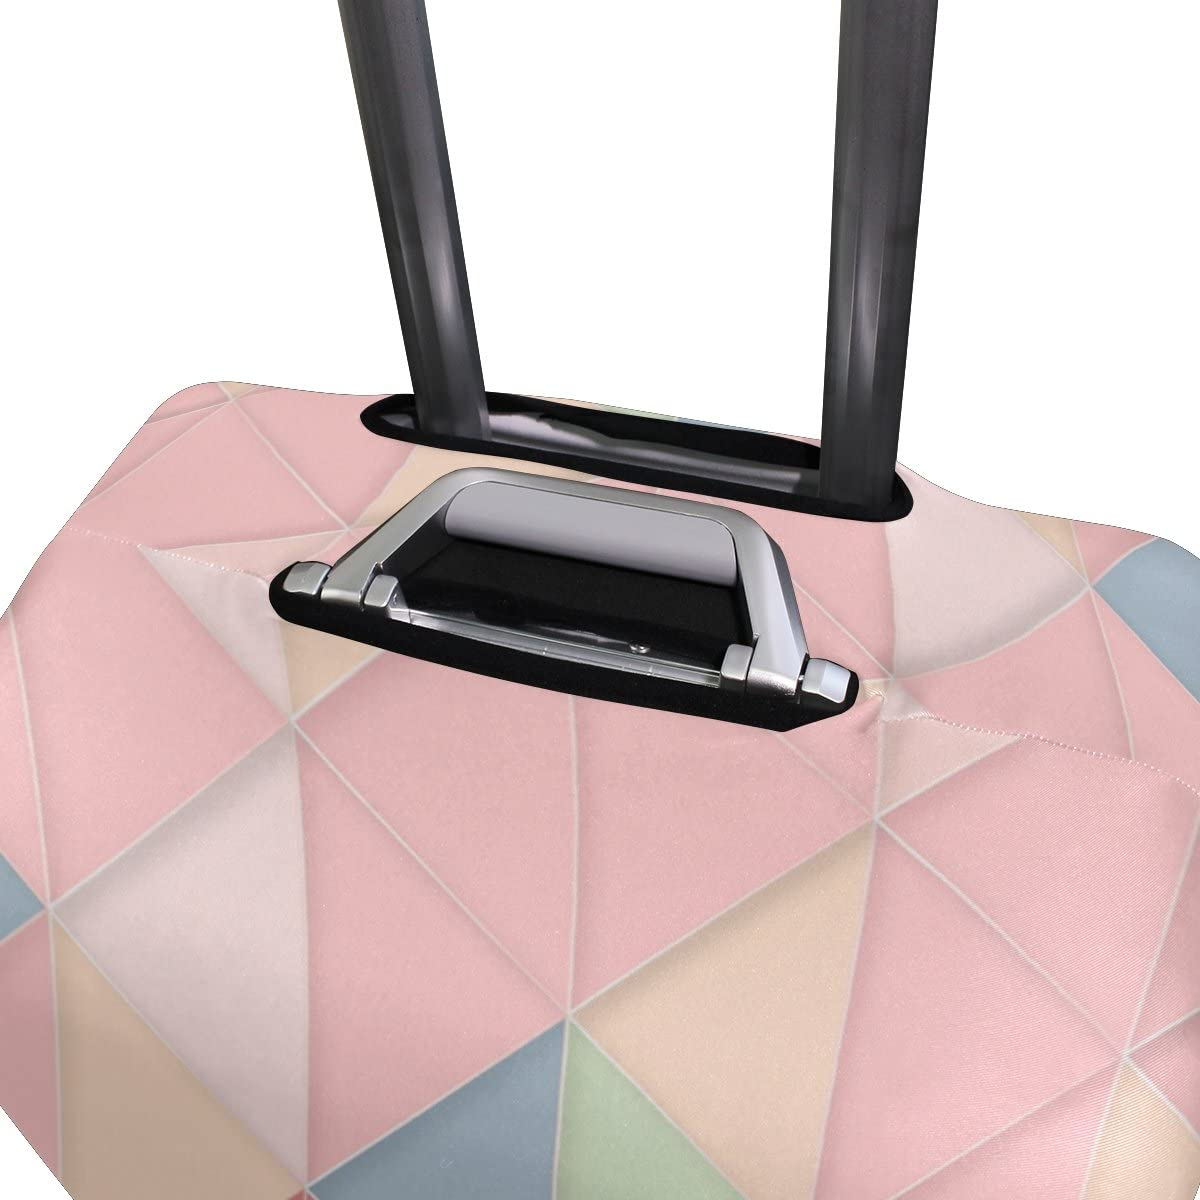 Cute 3D Pink Geometric Pattern Luggage Protector Travel Luggage Cover Trolley Case Protective Cover Fits 18-32 Inch